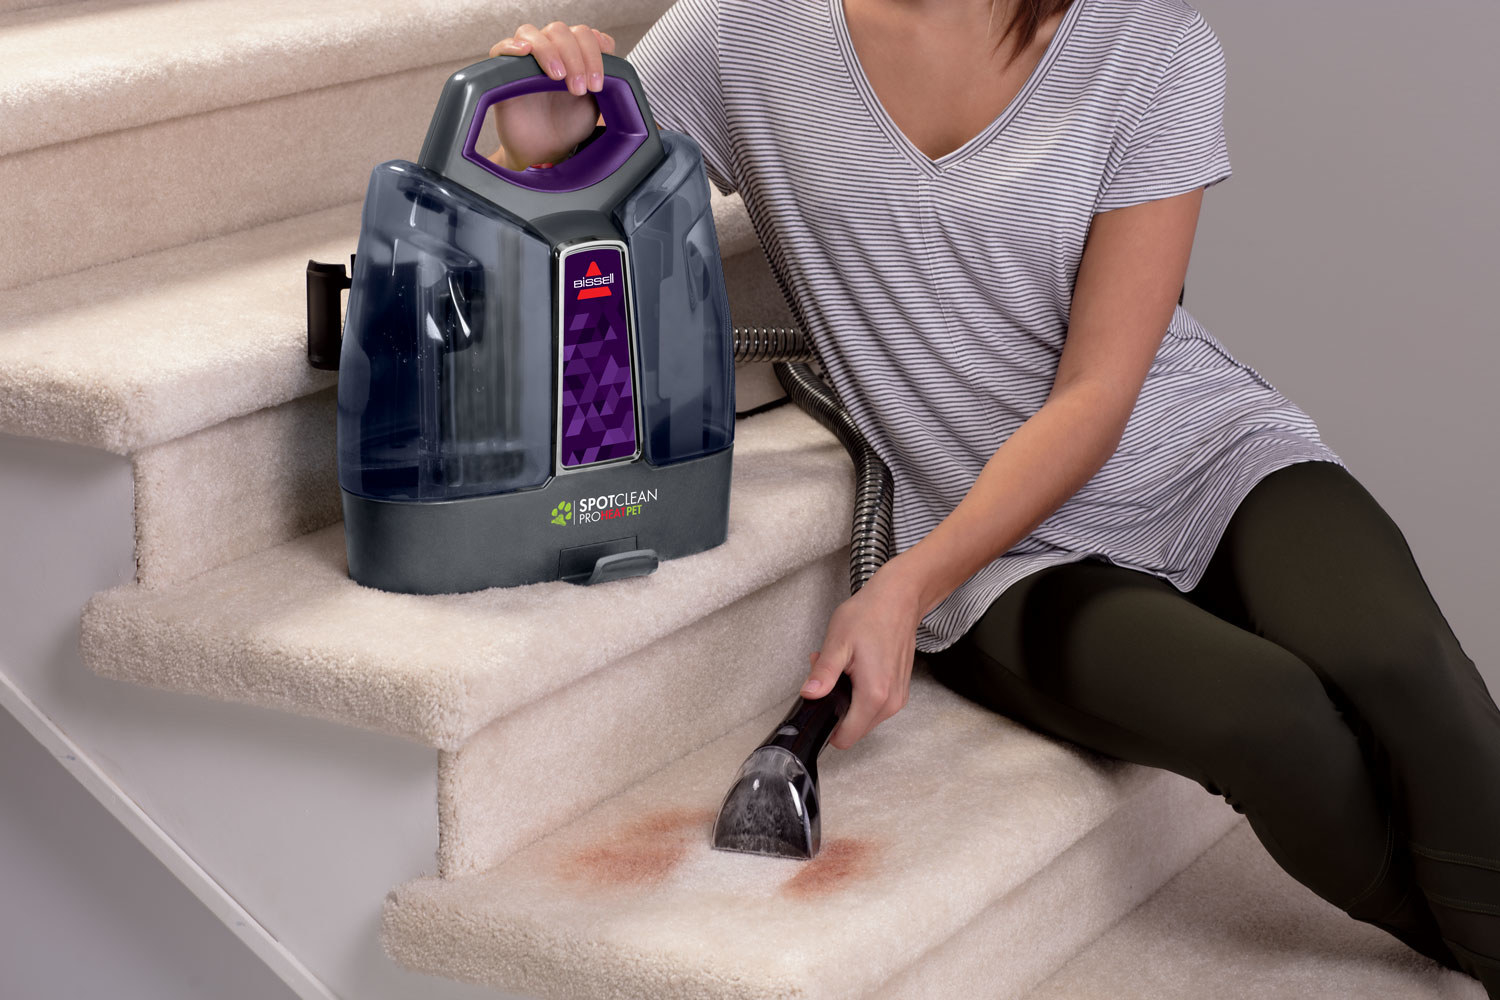 person using a bissell spot cleaner to clean up a carpet stain